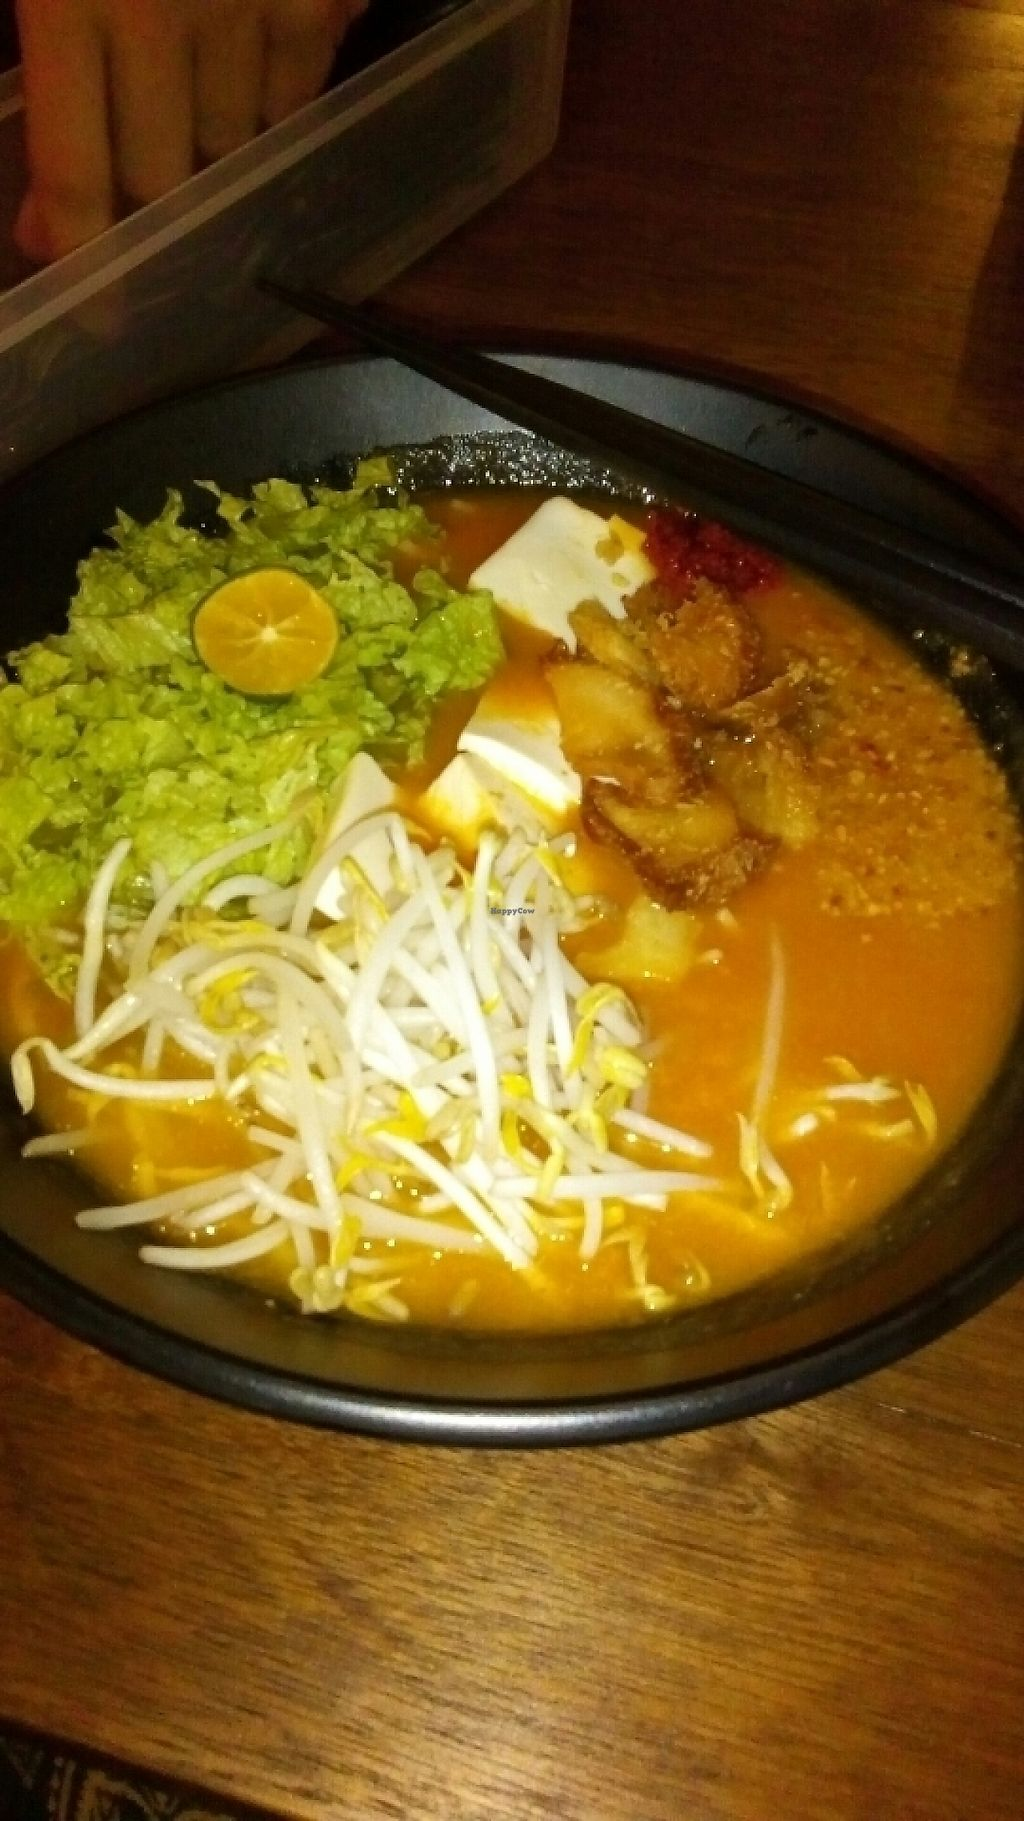 """Photo of Pinxin Vegan Cuisine  by <a href=""""/members/profile/u_are_brilliant"""">u_are_brilliant</a> <br/>Jawa mee for dinner. So big and so yummy <br/> June 6, 2017  - <a href='/contact/abuse/image/83210/266375'>Report</a>"""